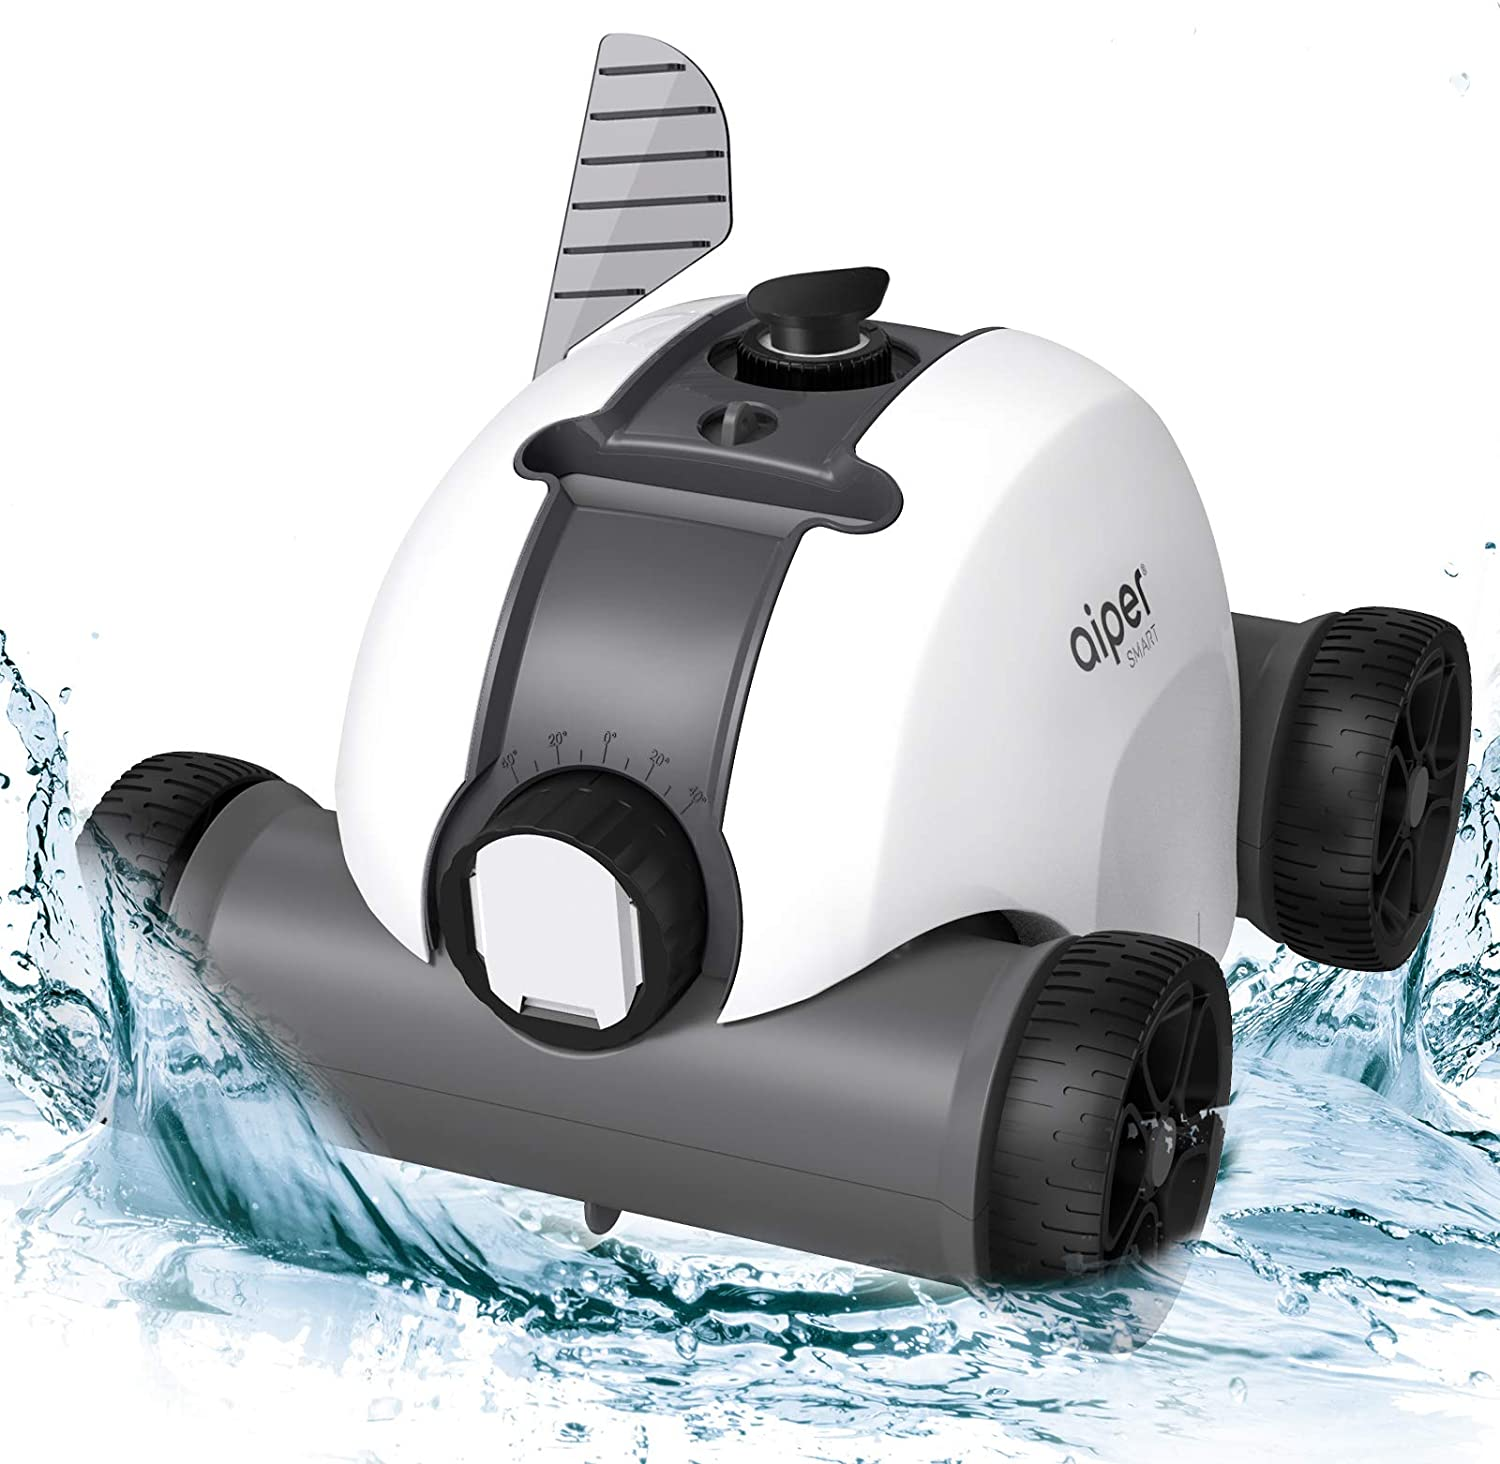 Safety and Over item handling trust AIPER SMART Cordless Automatic Rechargeable Pool Cleaner Roboti